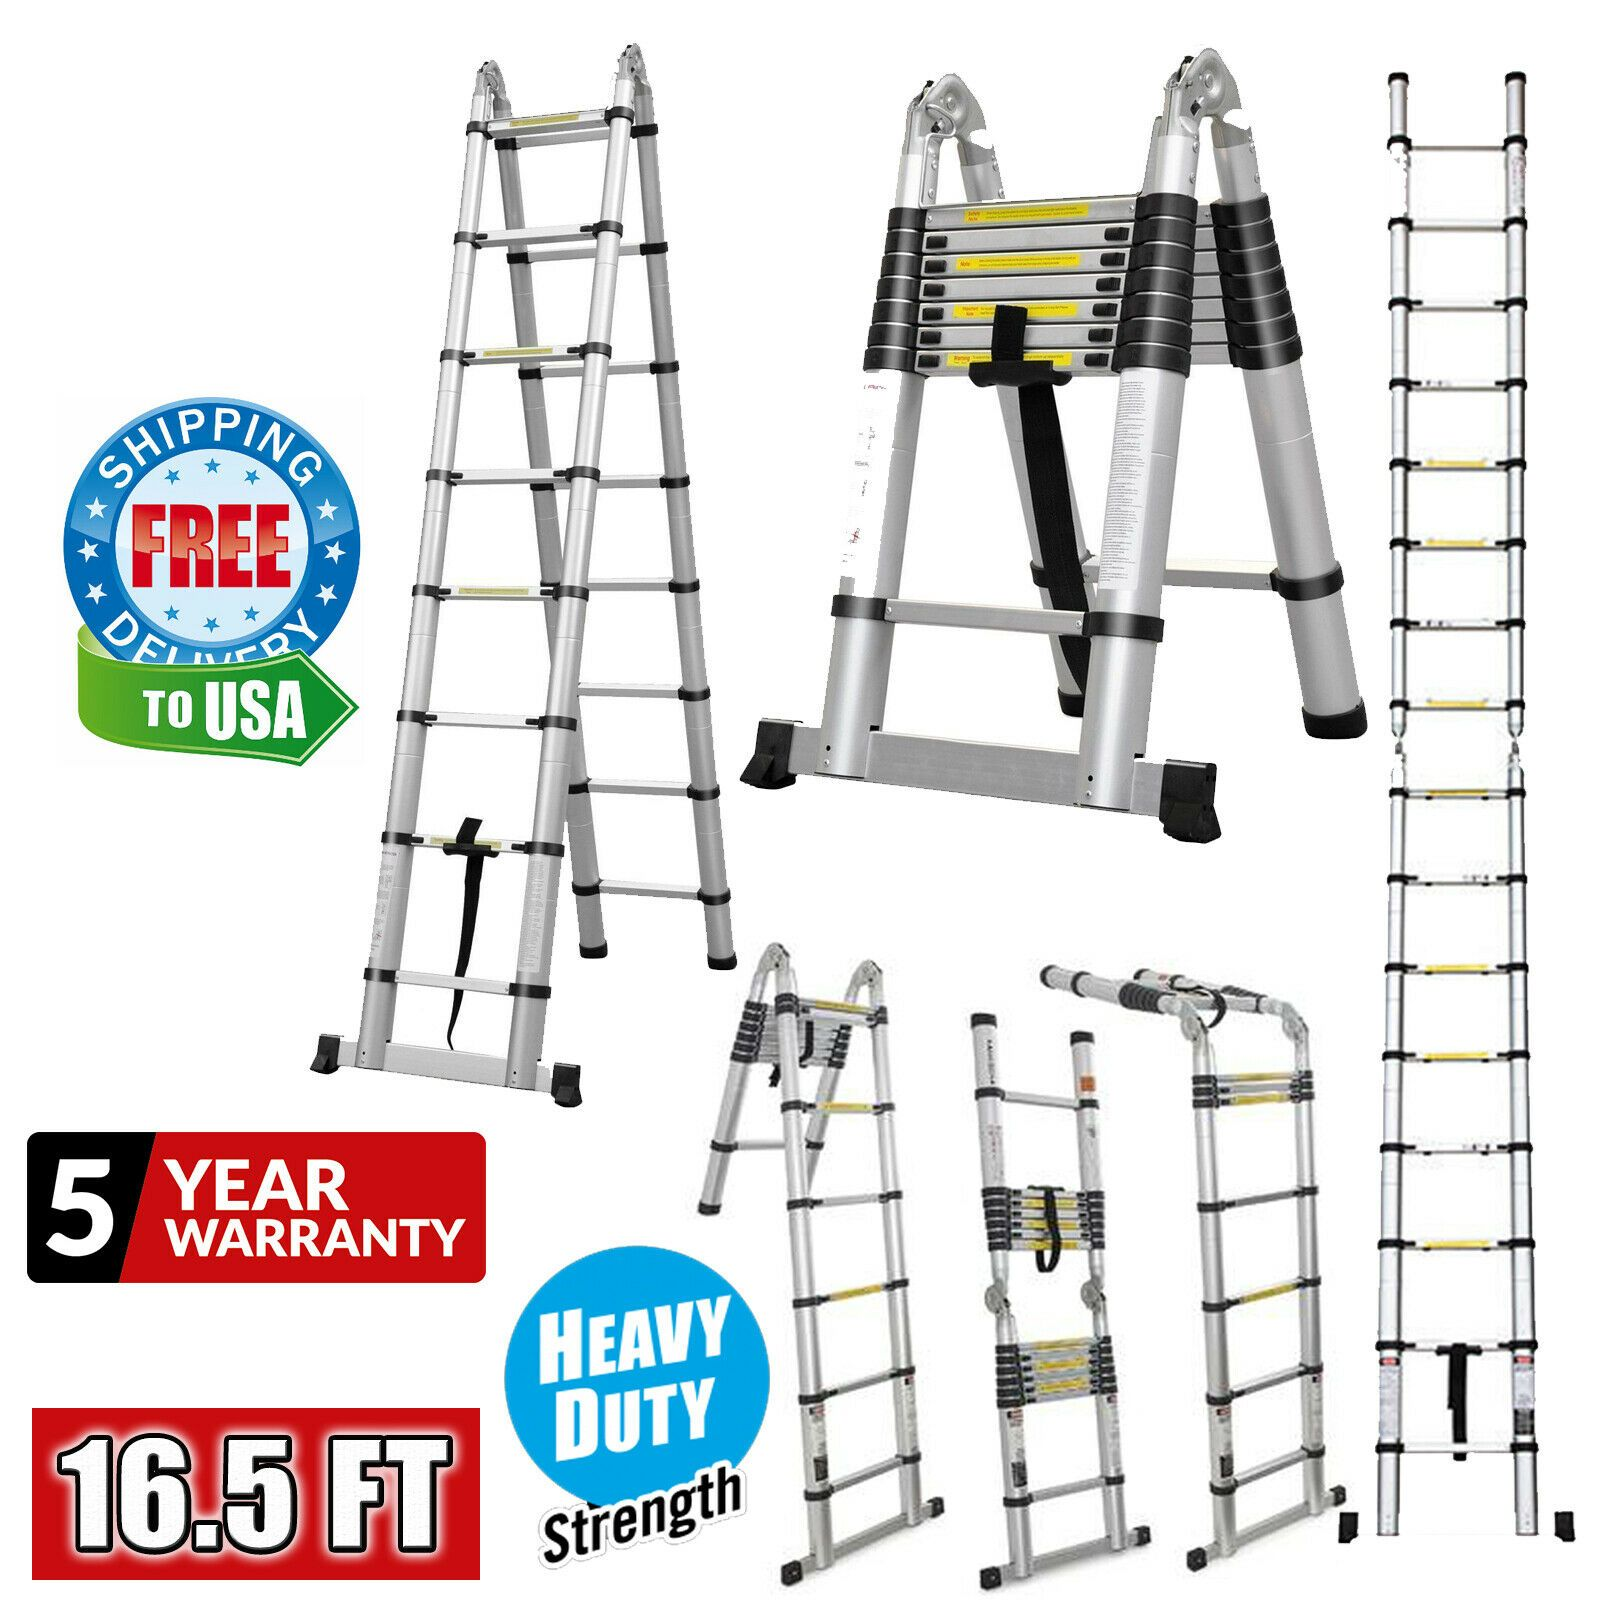 Telescopic Ladder 16 5 Ft Aluminum Extension Folding Ladder Multi Purpose New In 2020 Telescopic Ladder Folding Ladder Aluminum Extension